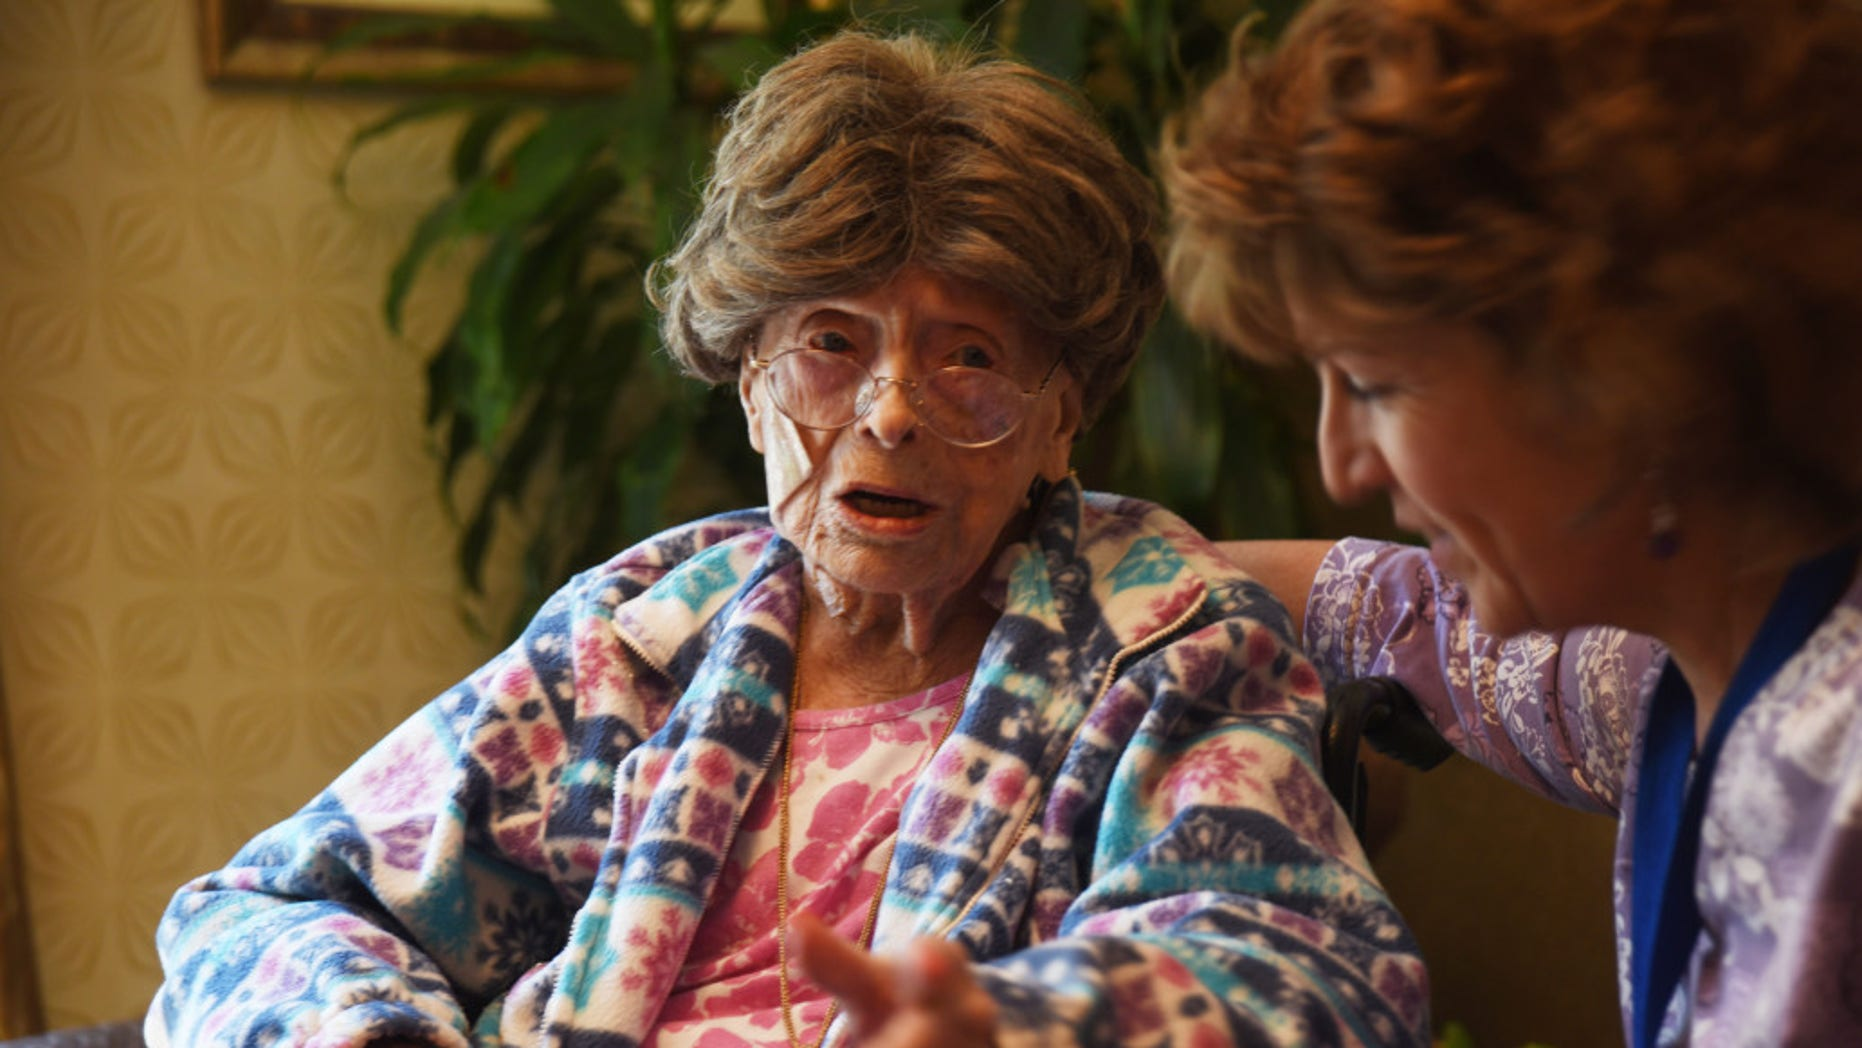 Adele Dunlap, 113, talks to a caregiver in Pittstown, N.J.